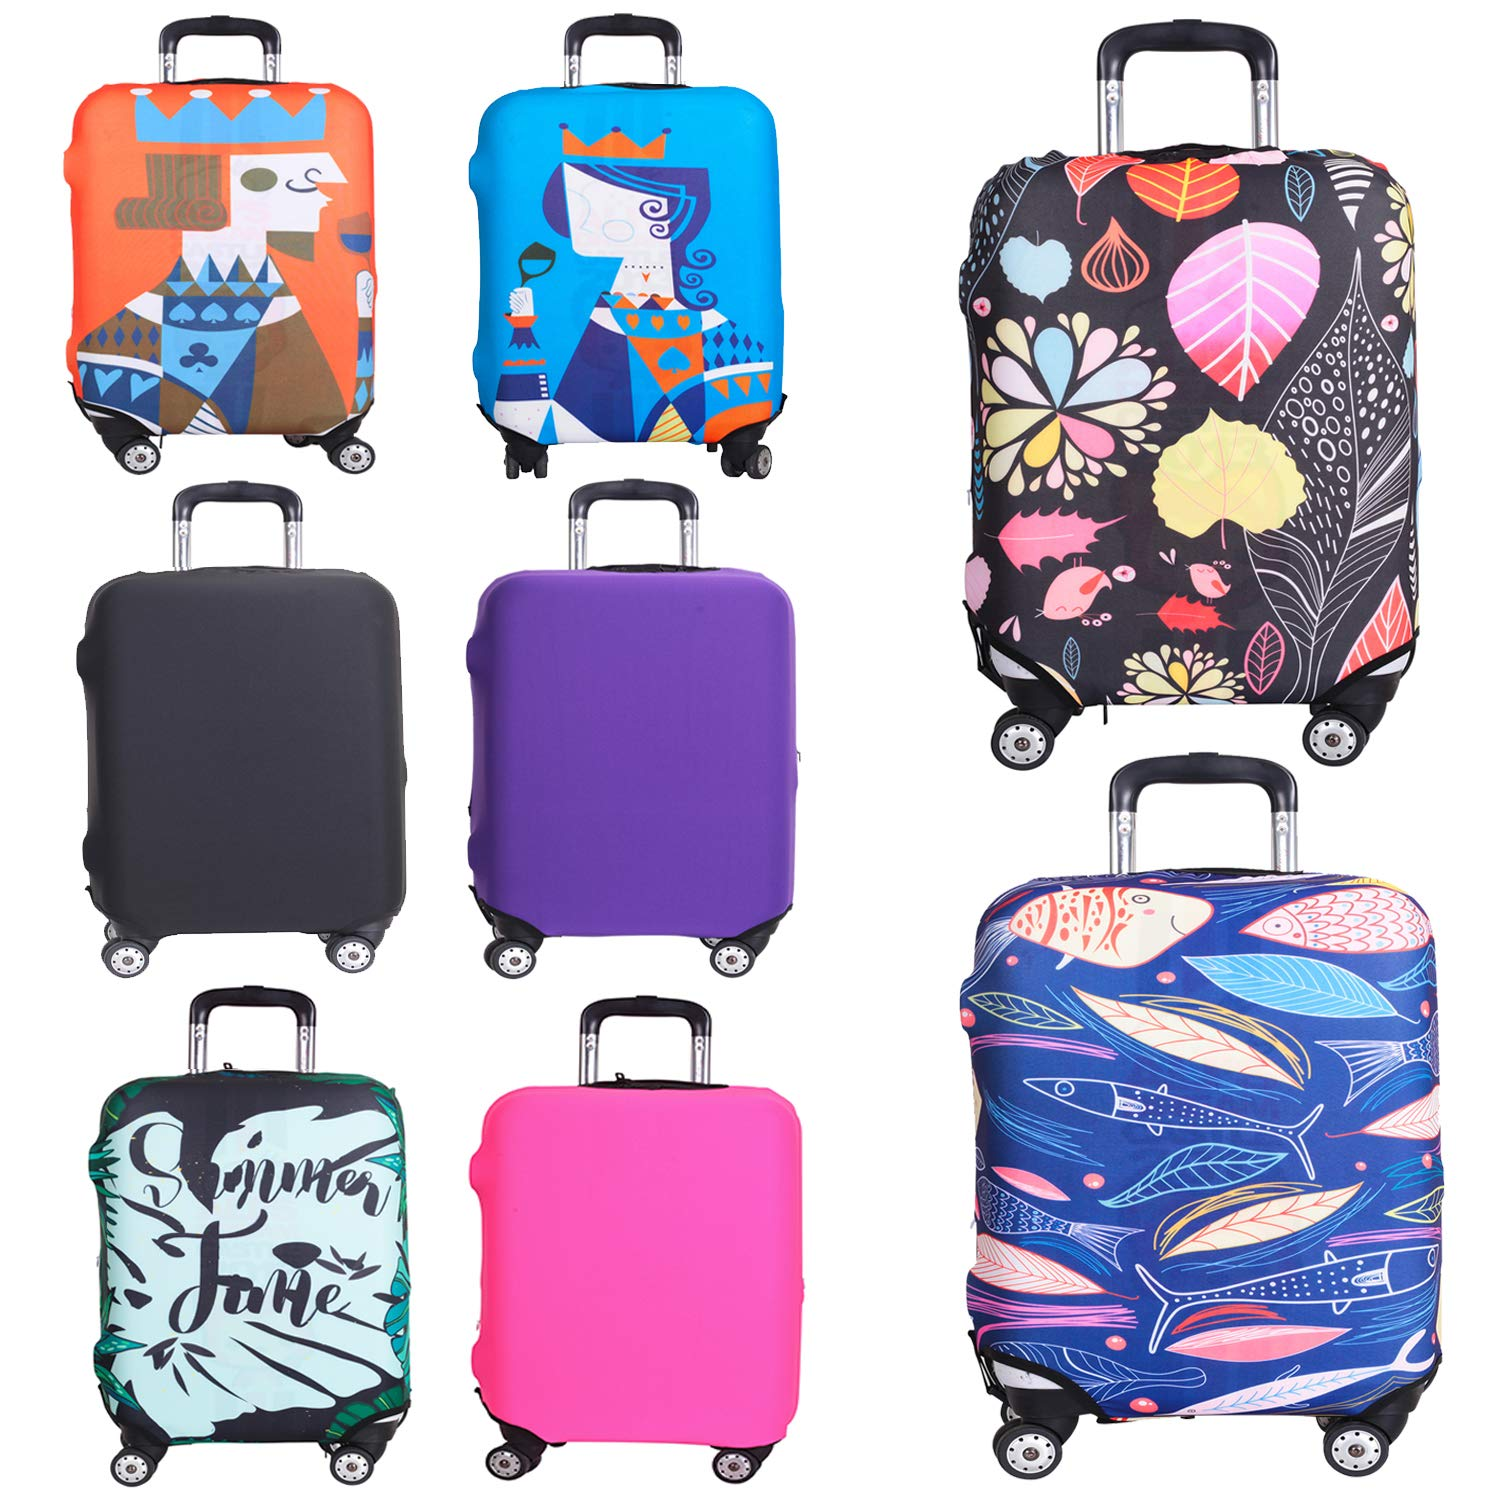 db8ac94a1595 Amazon.com: Reliancer Travel Luggage Cover Spandex Suitcase ...